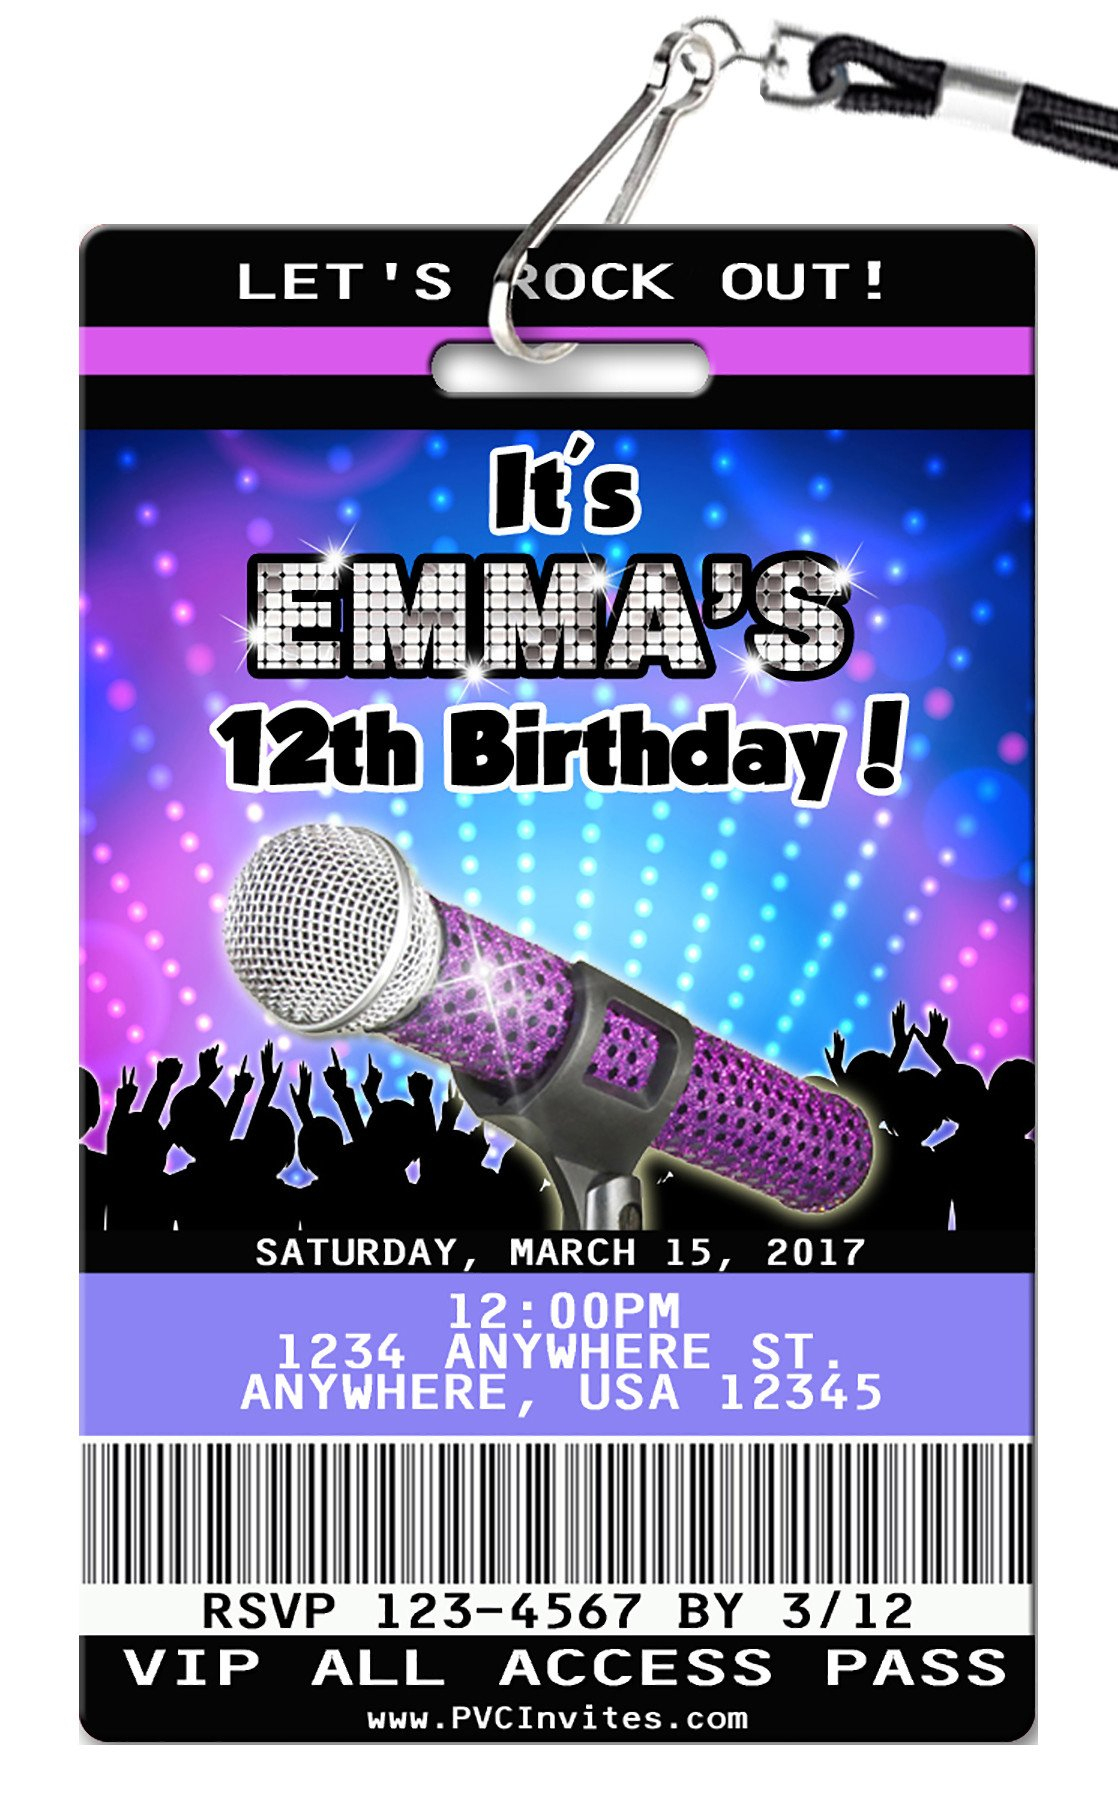 Karaoke Birthday Invitation In 2019 | Kenzi's 8Th Kareoke Birthday - Free Printable Karaoke Party Invitations